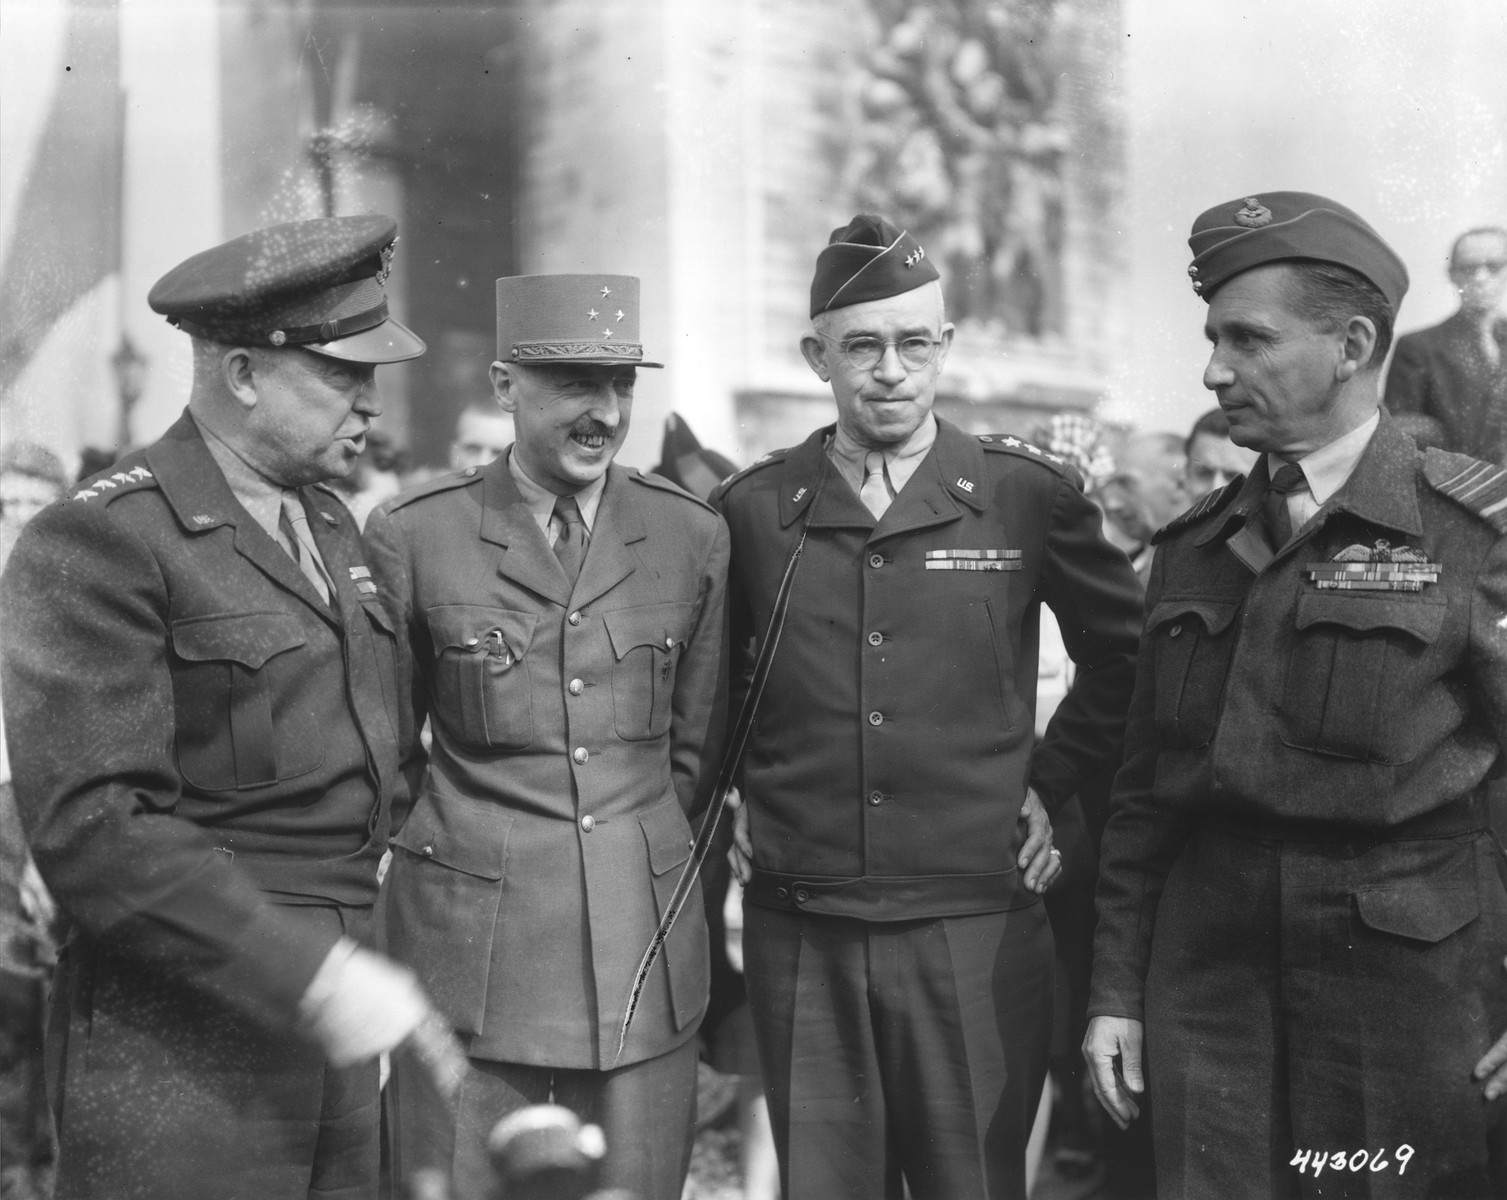 General Dwight D. Eisenhower confers with ranking French, British amd American officers at the Arc de Triomphe.    Pictured from left to right are General Dwight D. Eisenhower, General Joseph Koenig, Lt. General  Omar N. Bradley, and Marshal Arthur Tedder.